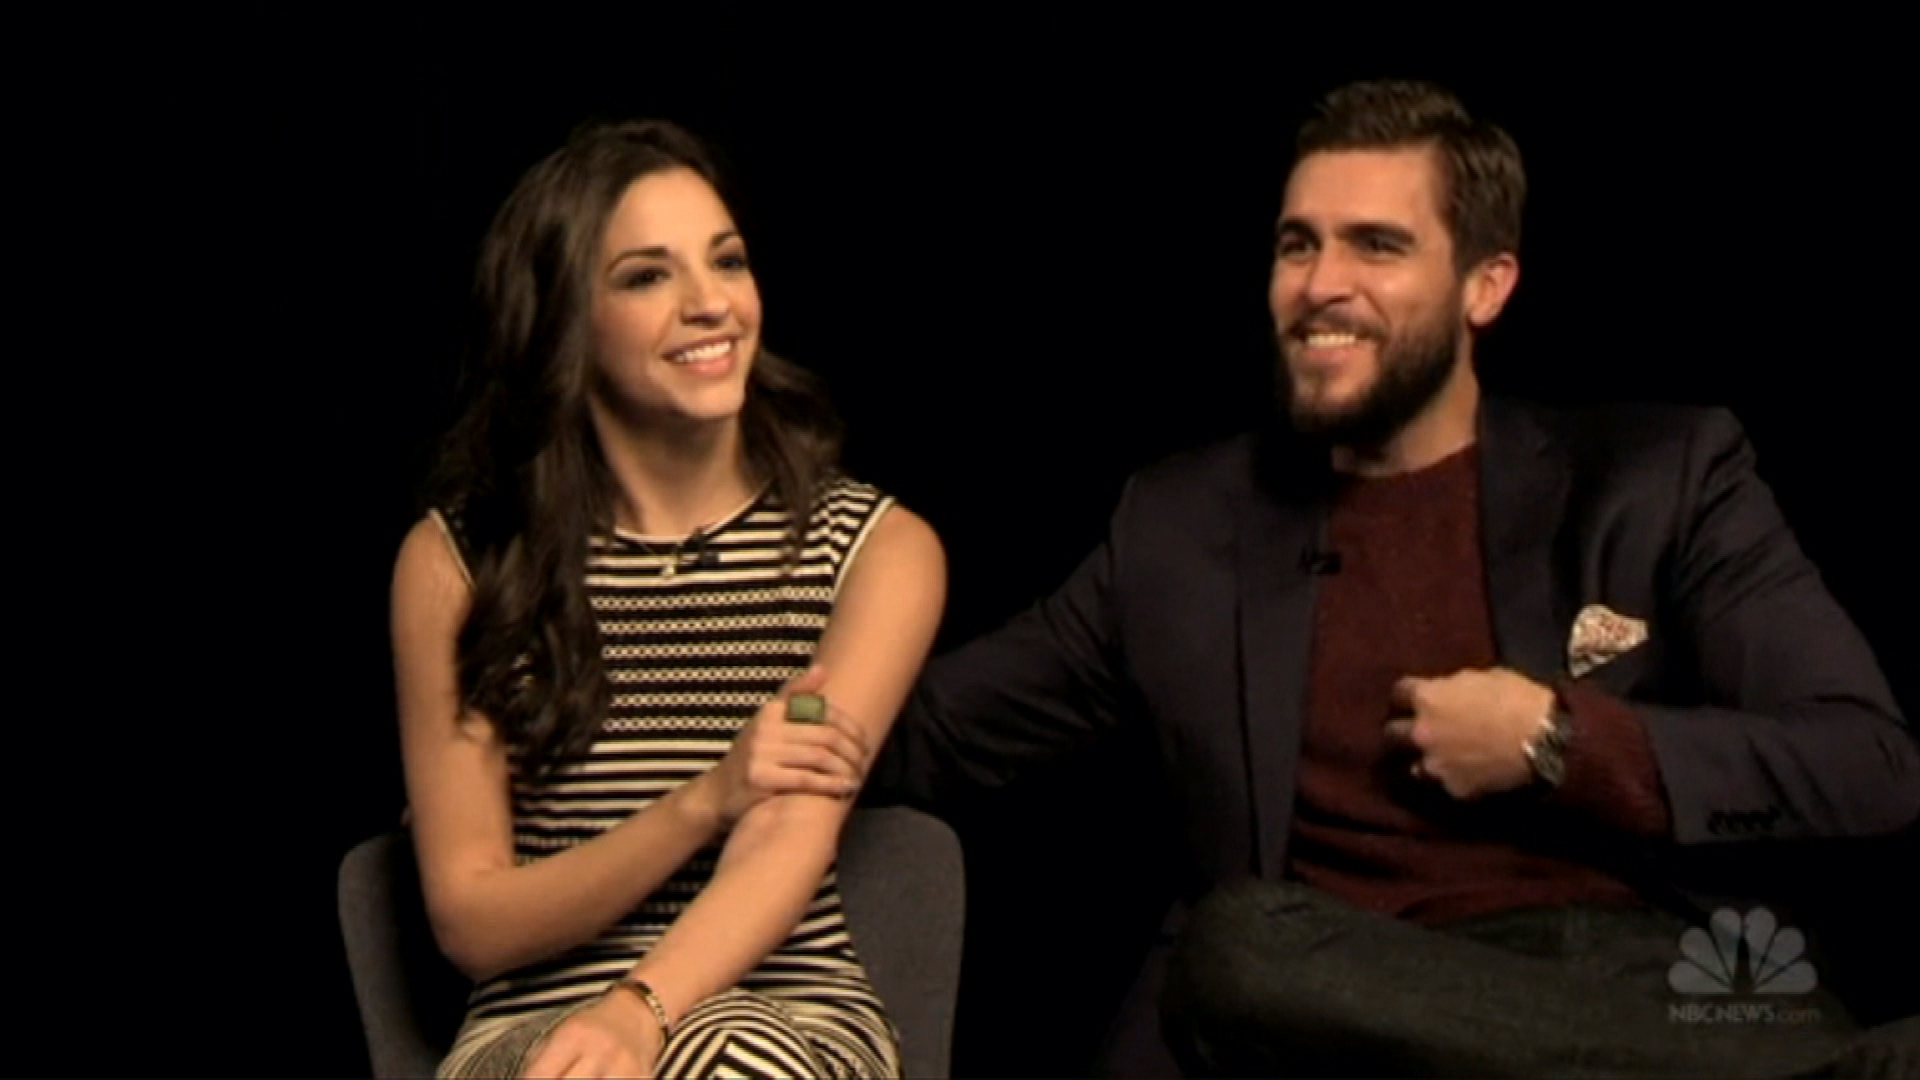 Latinos take on Broadway with 'On Your Feet'